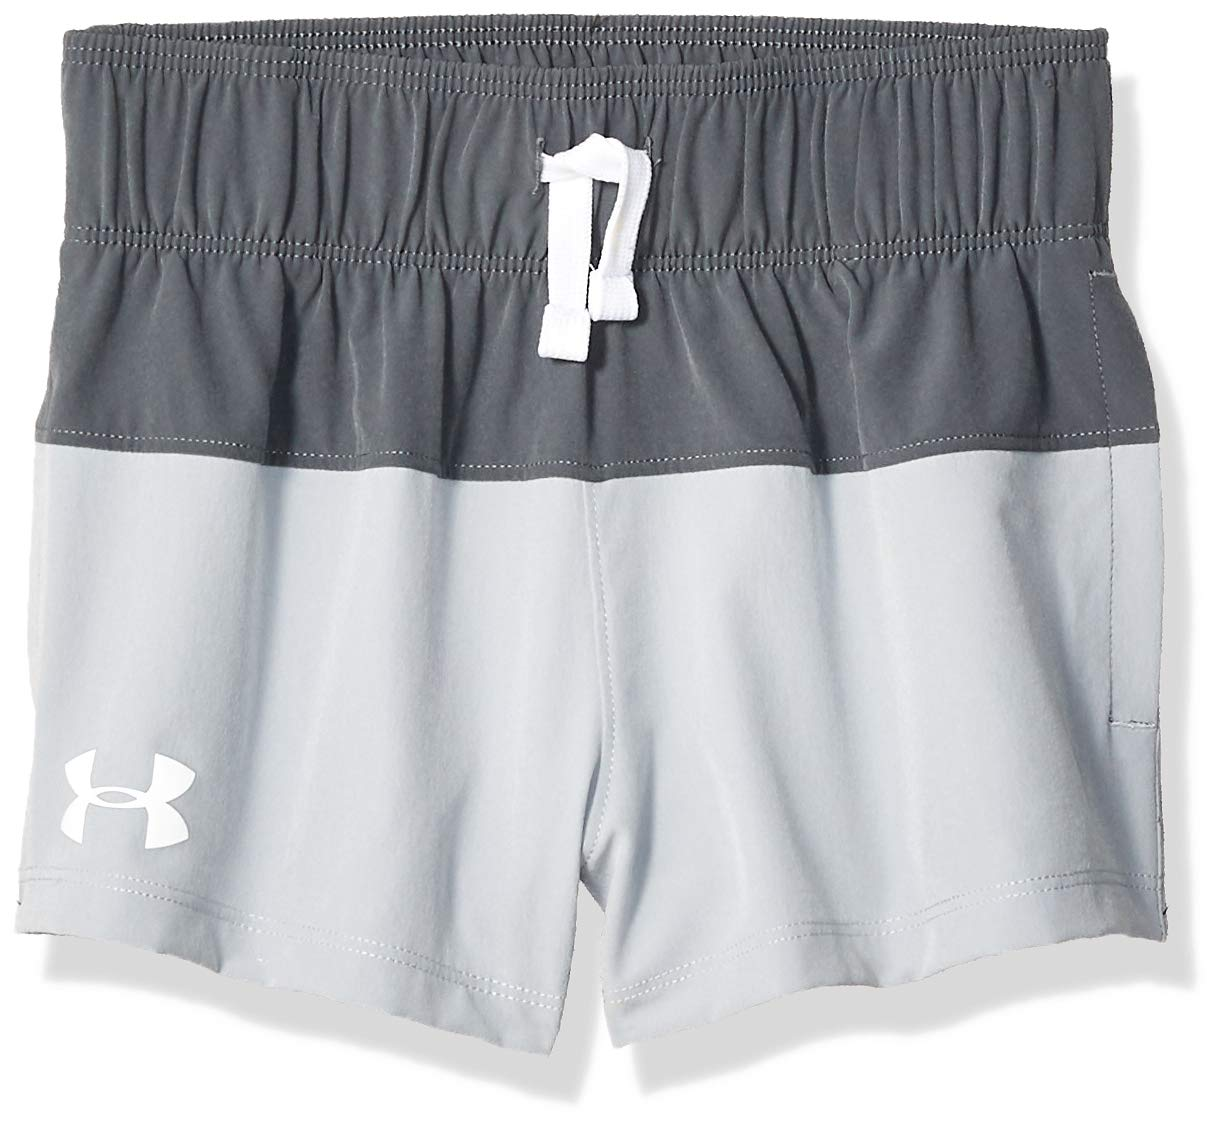 Under Armour Girls' Splash Board Shorty, Pitch Gray//White, Youth X-Large by Under Armour